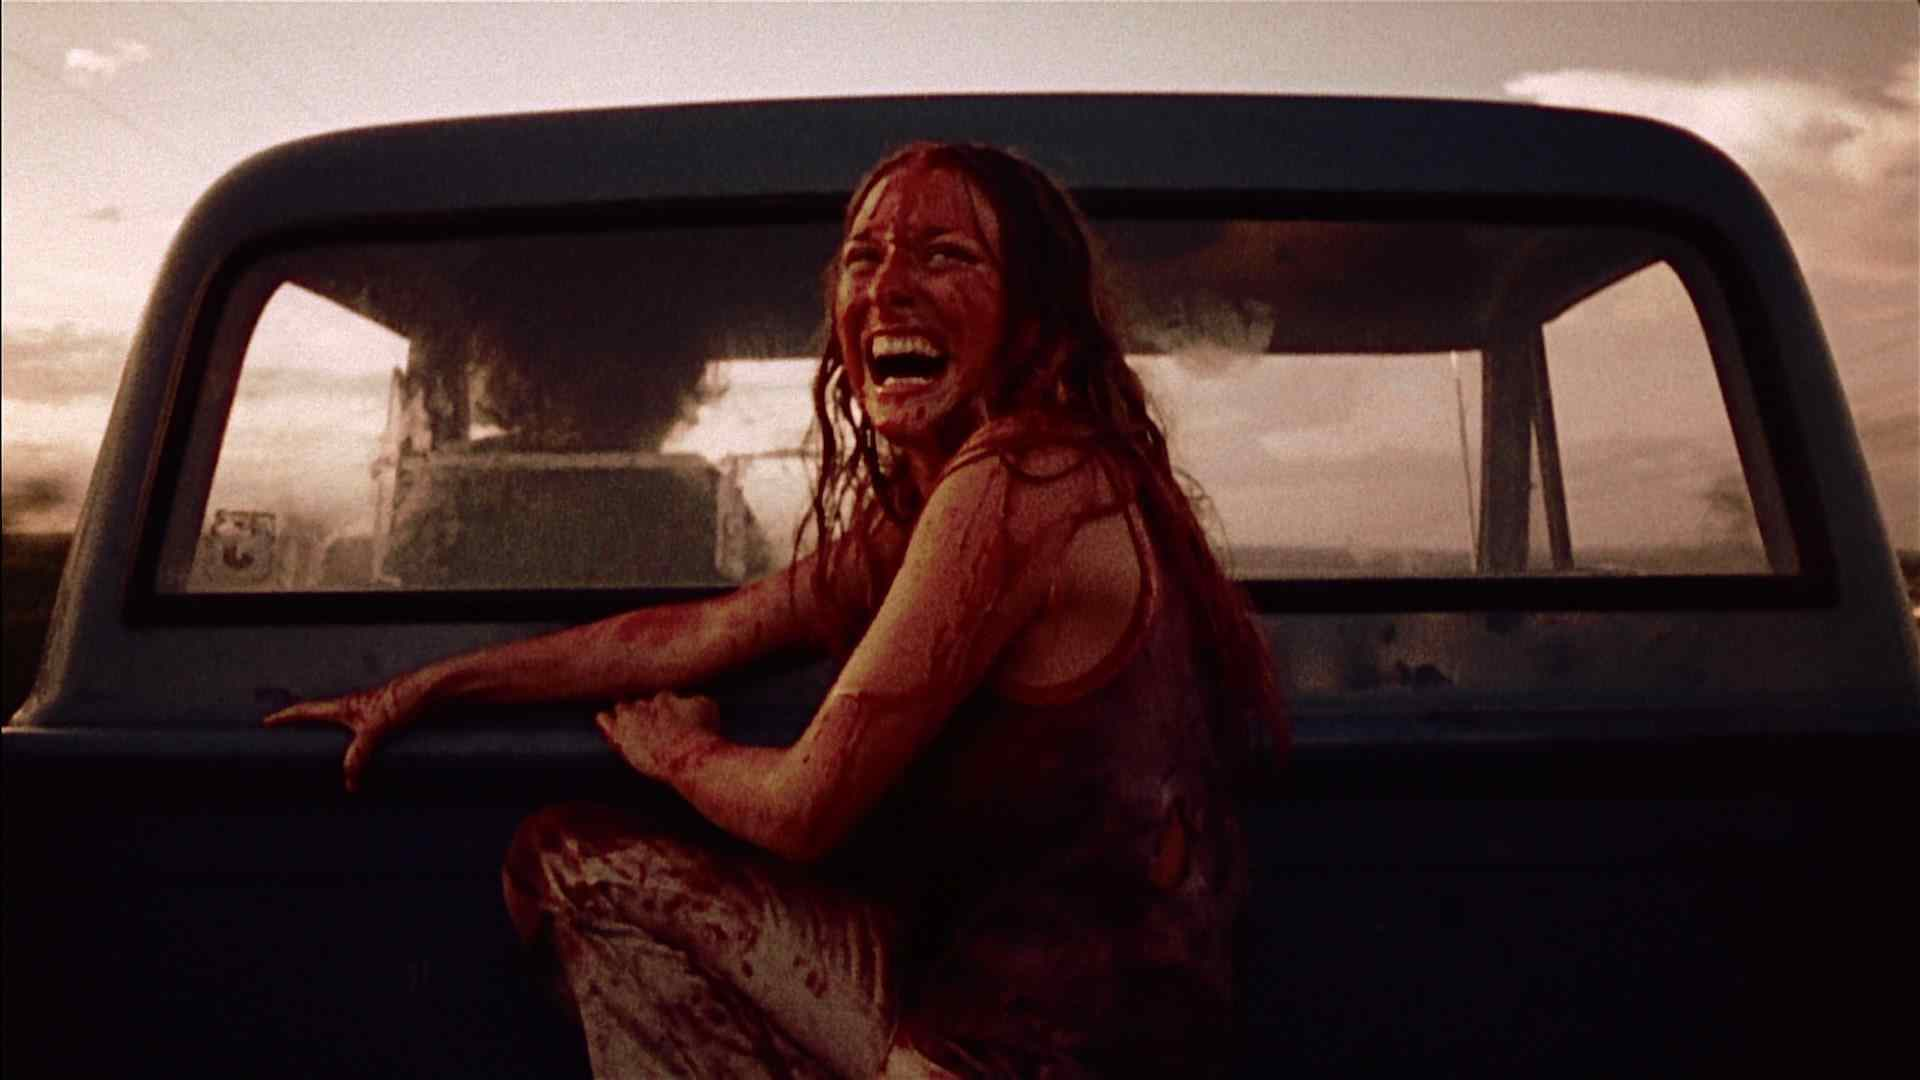 Marilyn Burns who plays Sally Hardesty in the hit horror The Texas Chainsaw Massacre.